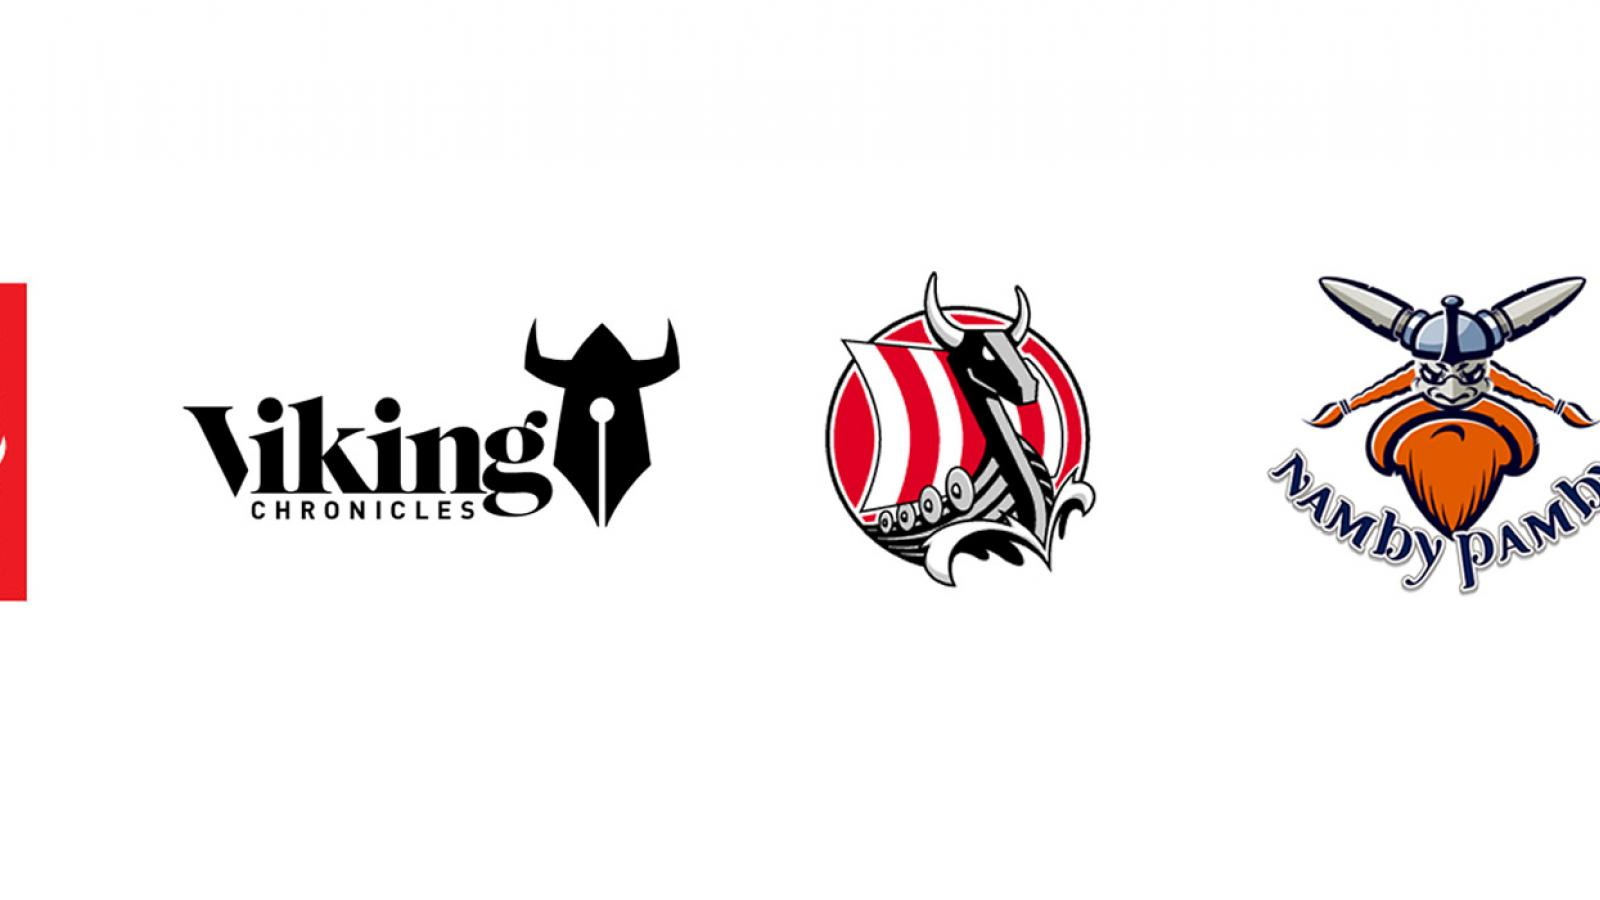 Logo Design: Vikings